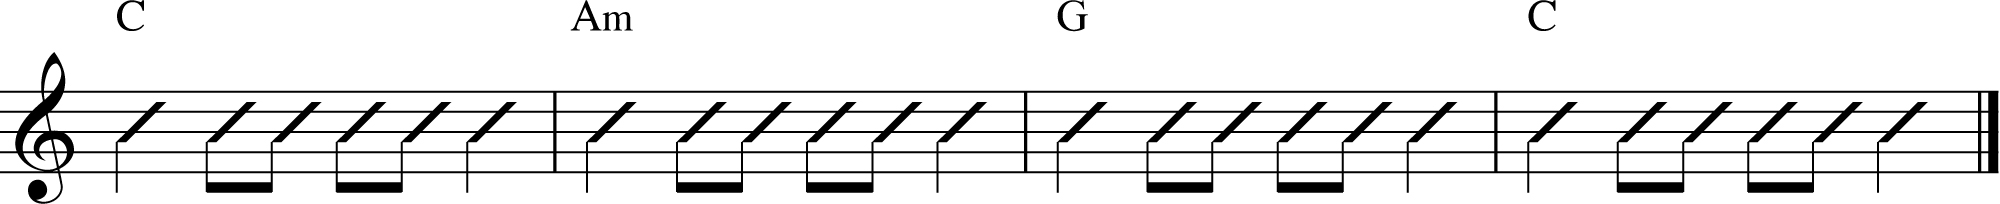 Here is the original chord progression in the key of C.